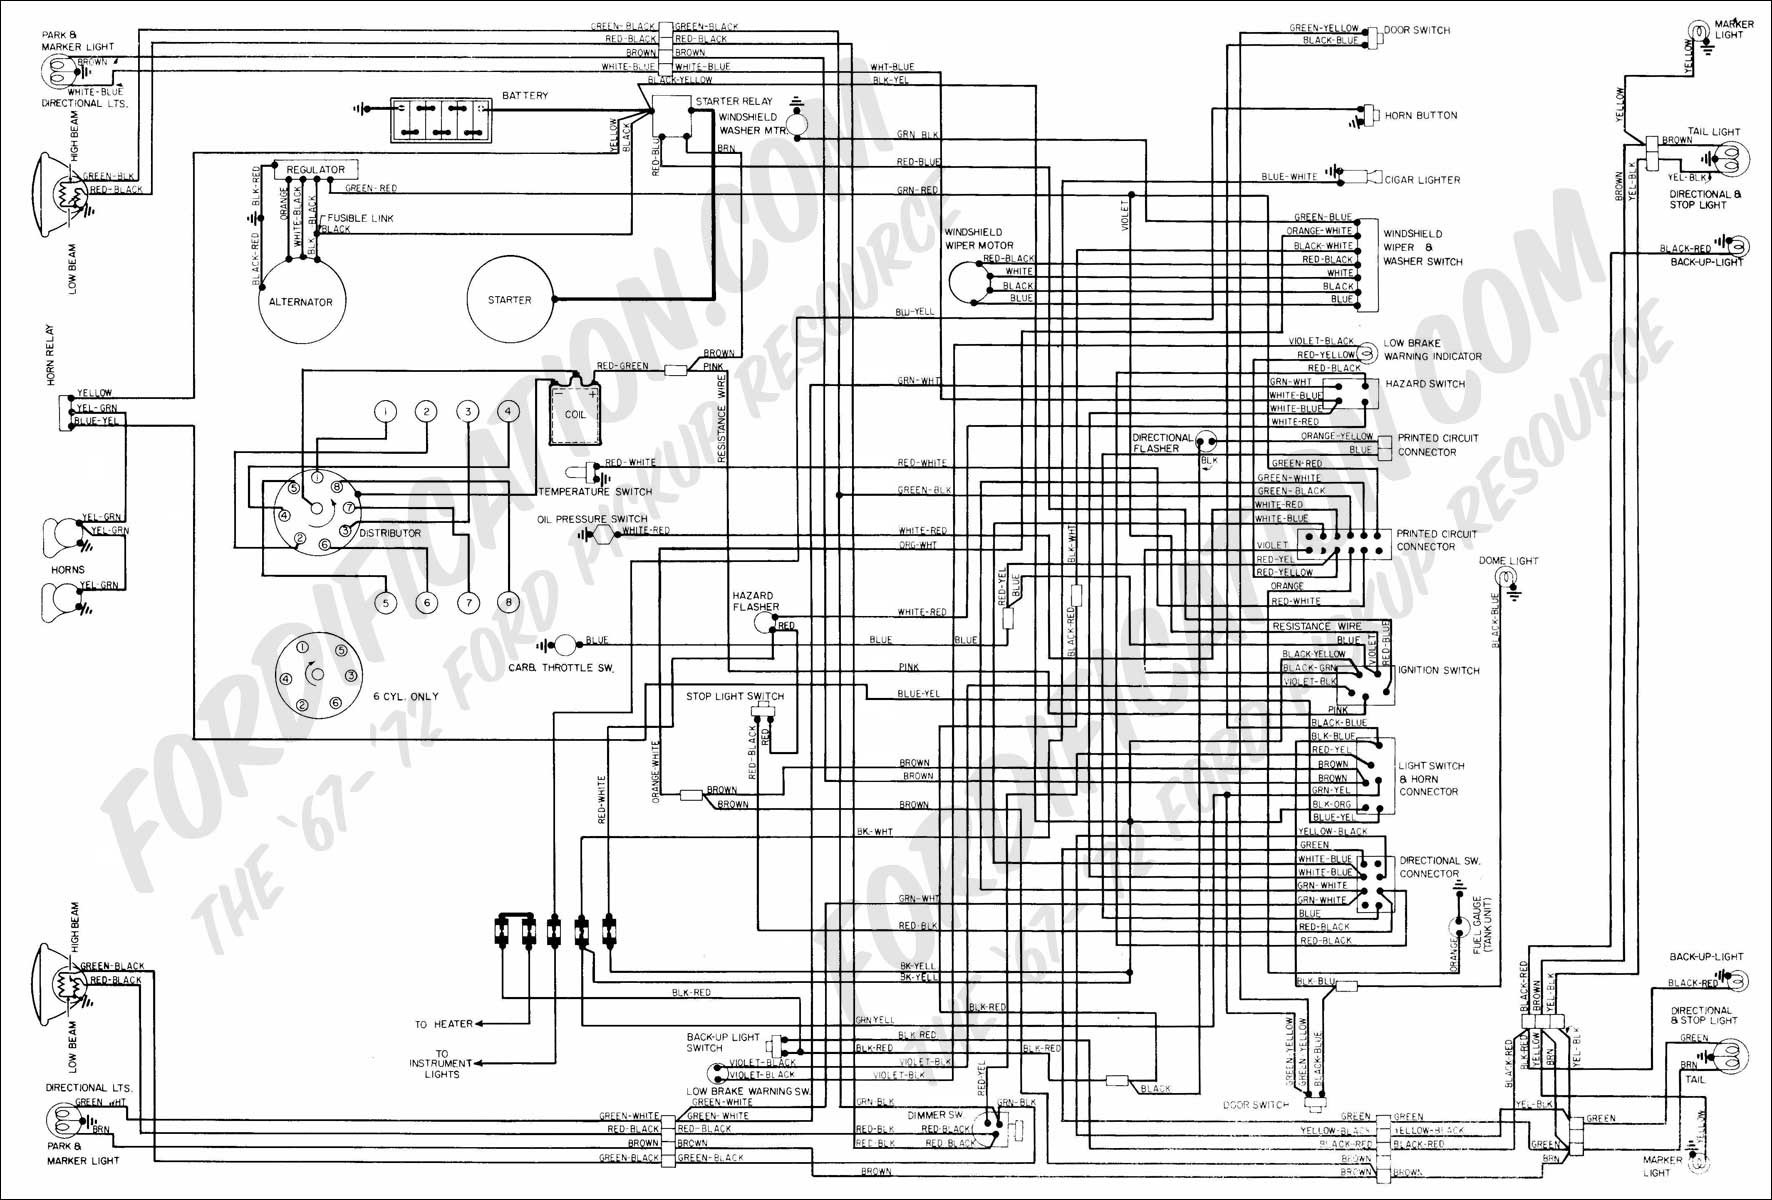 2002 ford escape ignition wiring diagram suzuki bandit 1200 2013 engine my